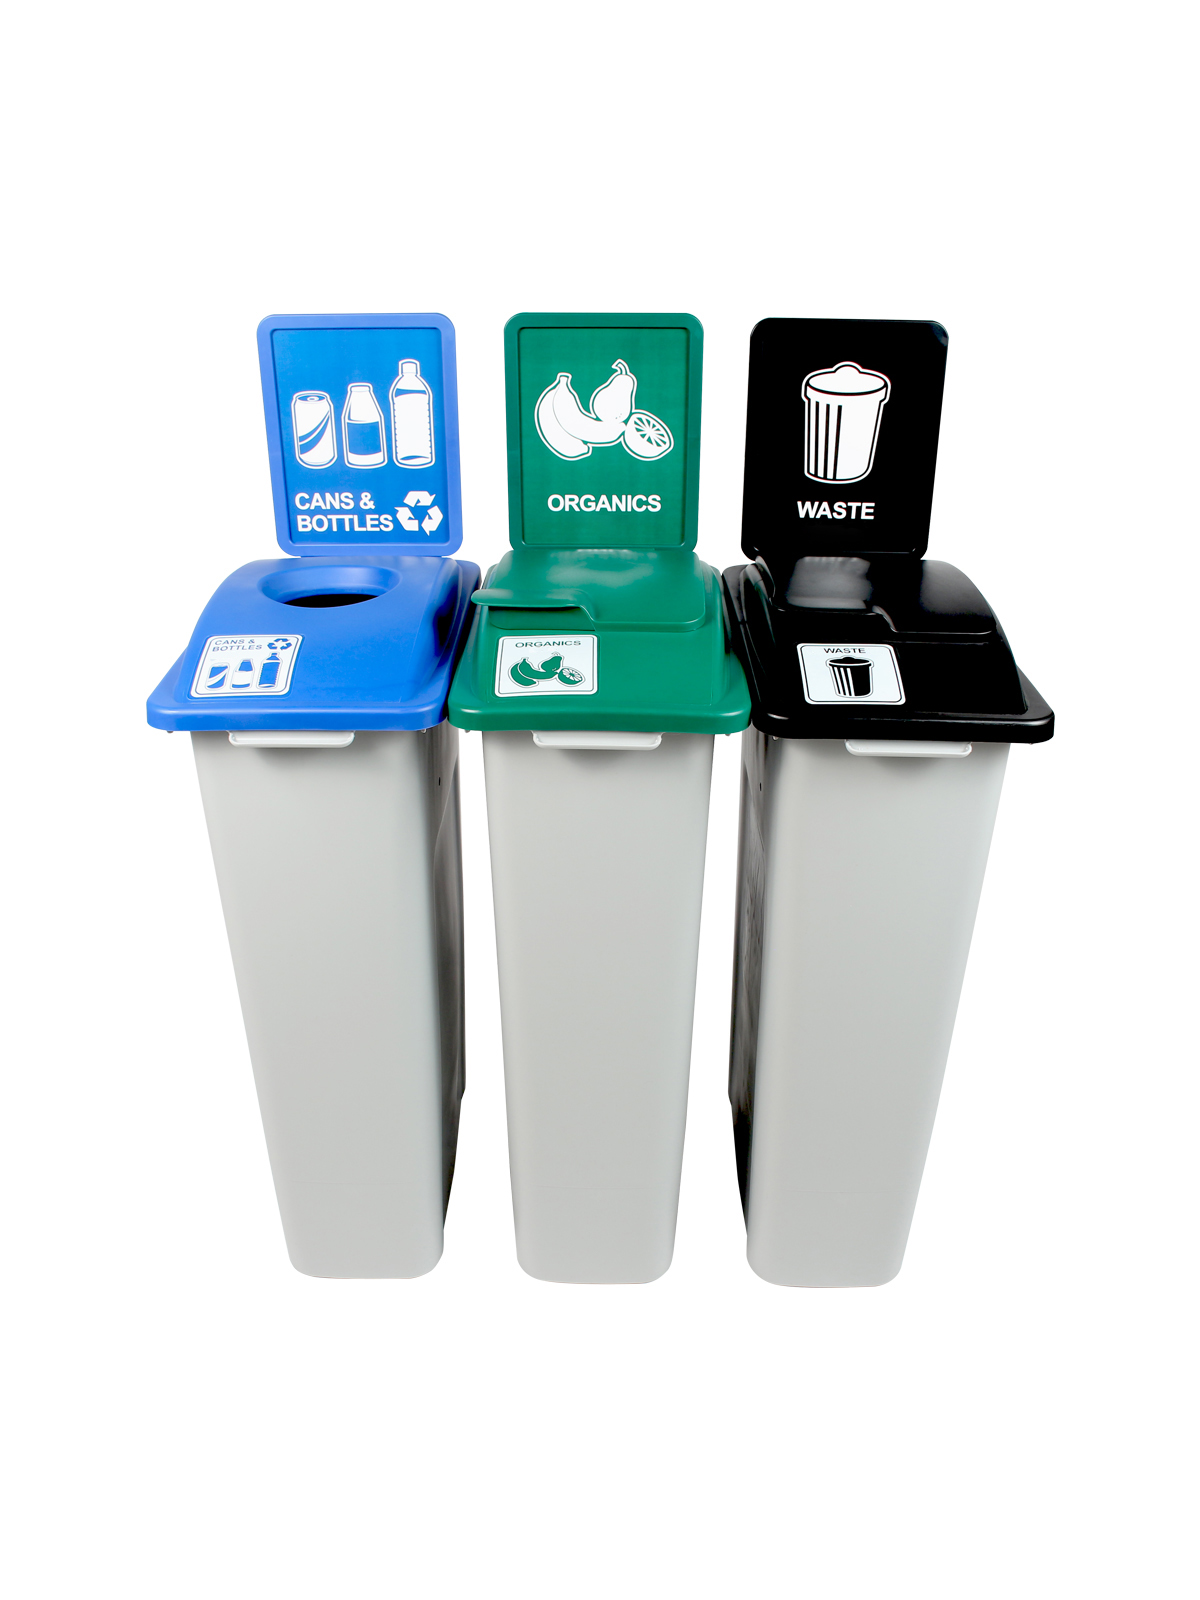 WASTE WATCHER - Triple - Cans & Bottles-Organics-Waste - Circle-Solid Lift-Solid Lift - Grey-Blue-Green-Black